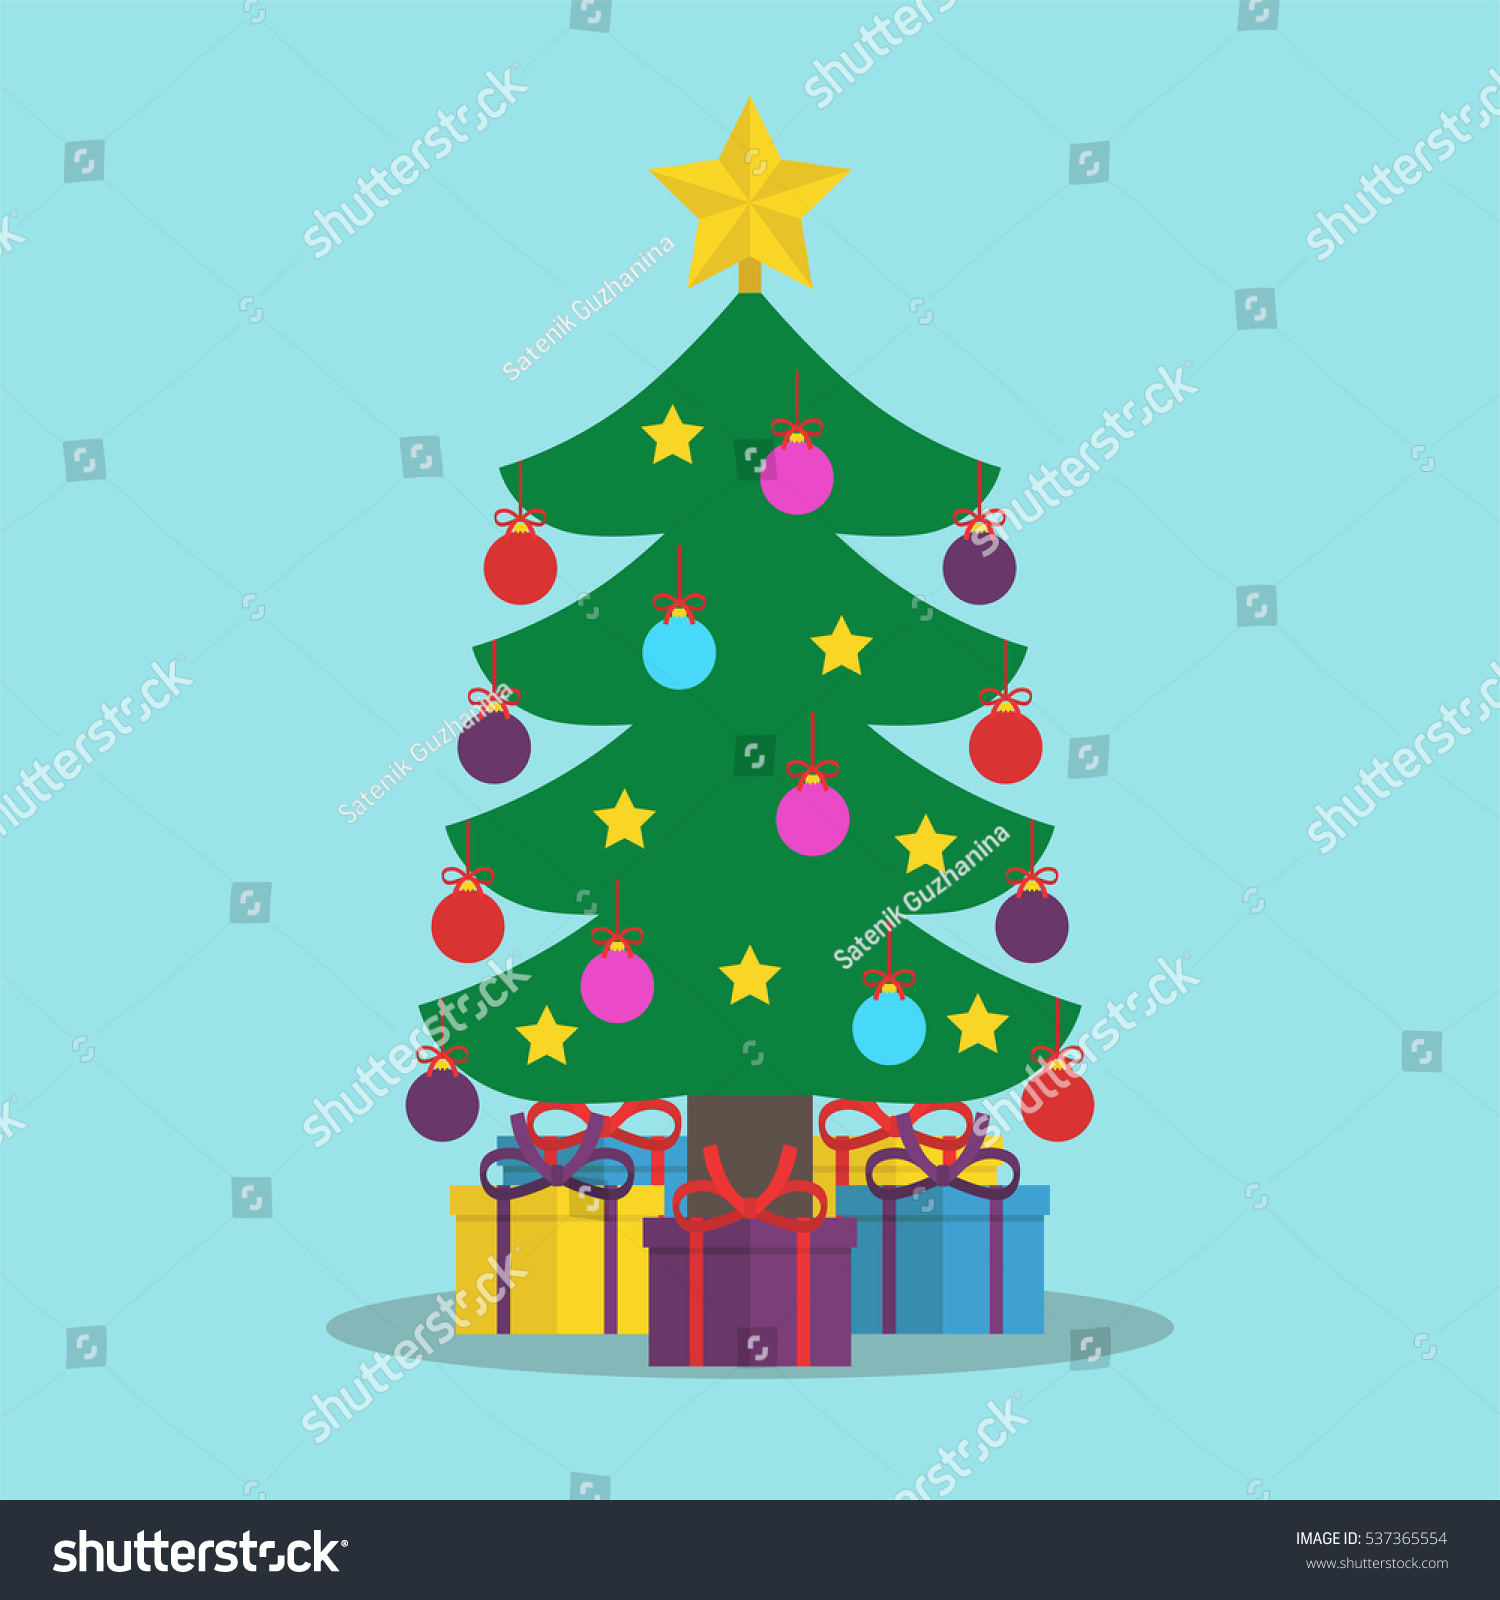 Christmas Tree Decorated Colored Balls Star Stock Vector 537365554 ...